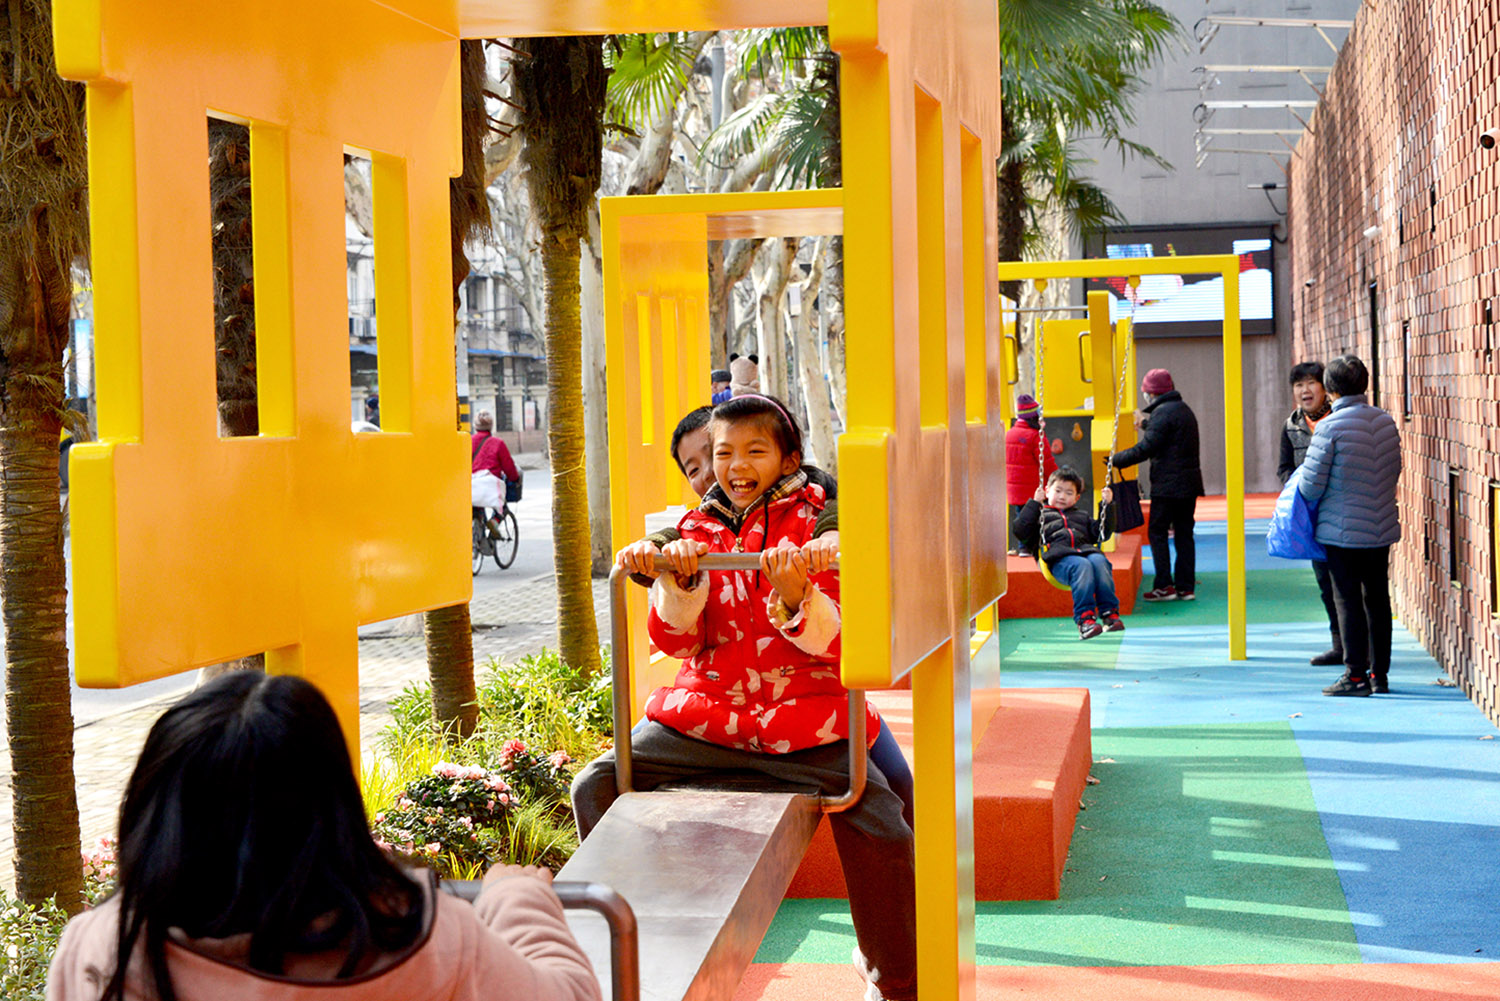 The placemaking solution associating the letters with playful facilities and a bright, colorful pavement,as well as the self managed community garden Ni Minqing